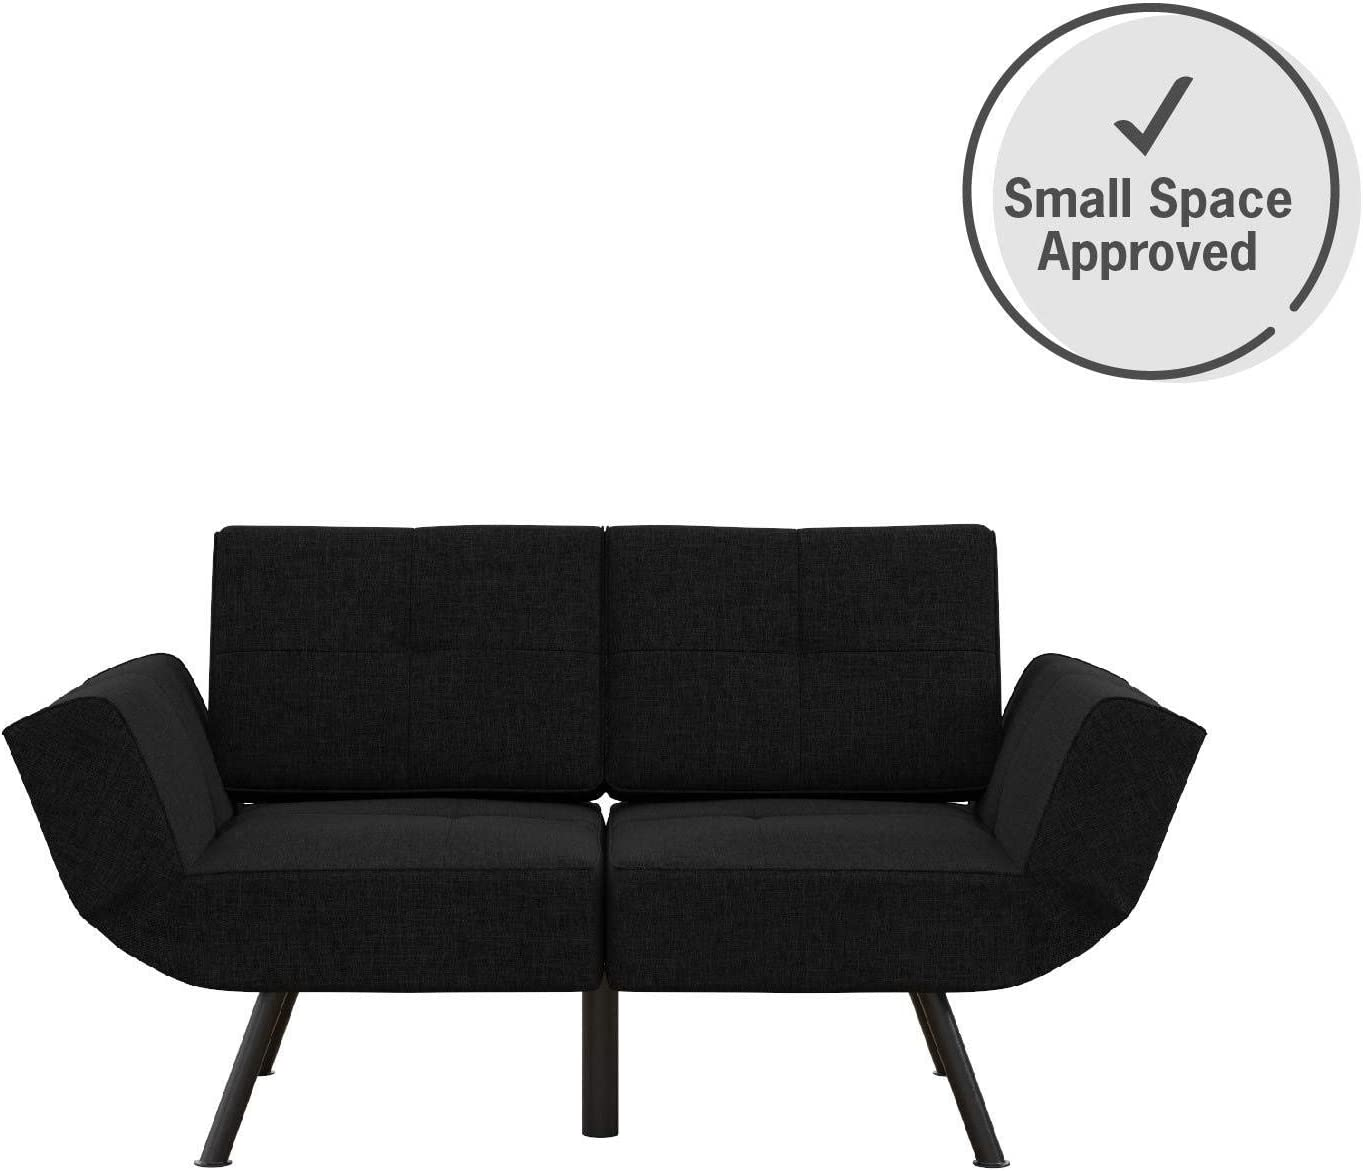 REALROOMS Euro Loveseat Futon, Reclining Sofa and Couch with Magazine Storage Pockets, Dark Gray Linen